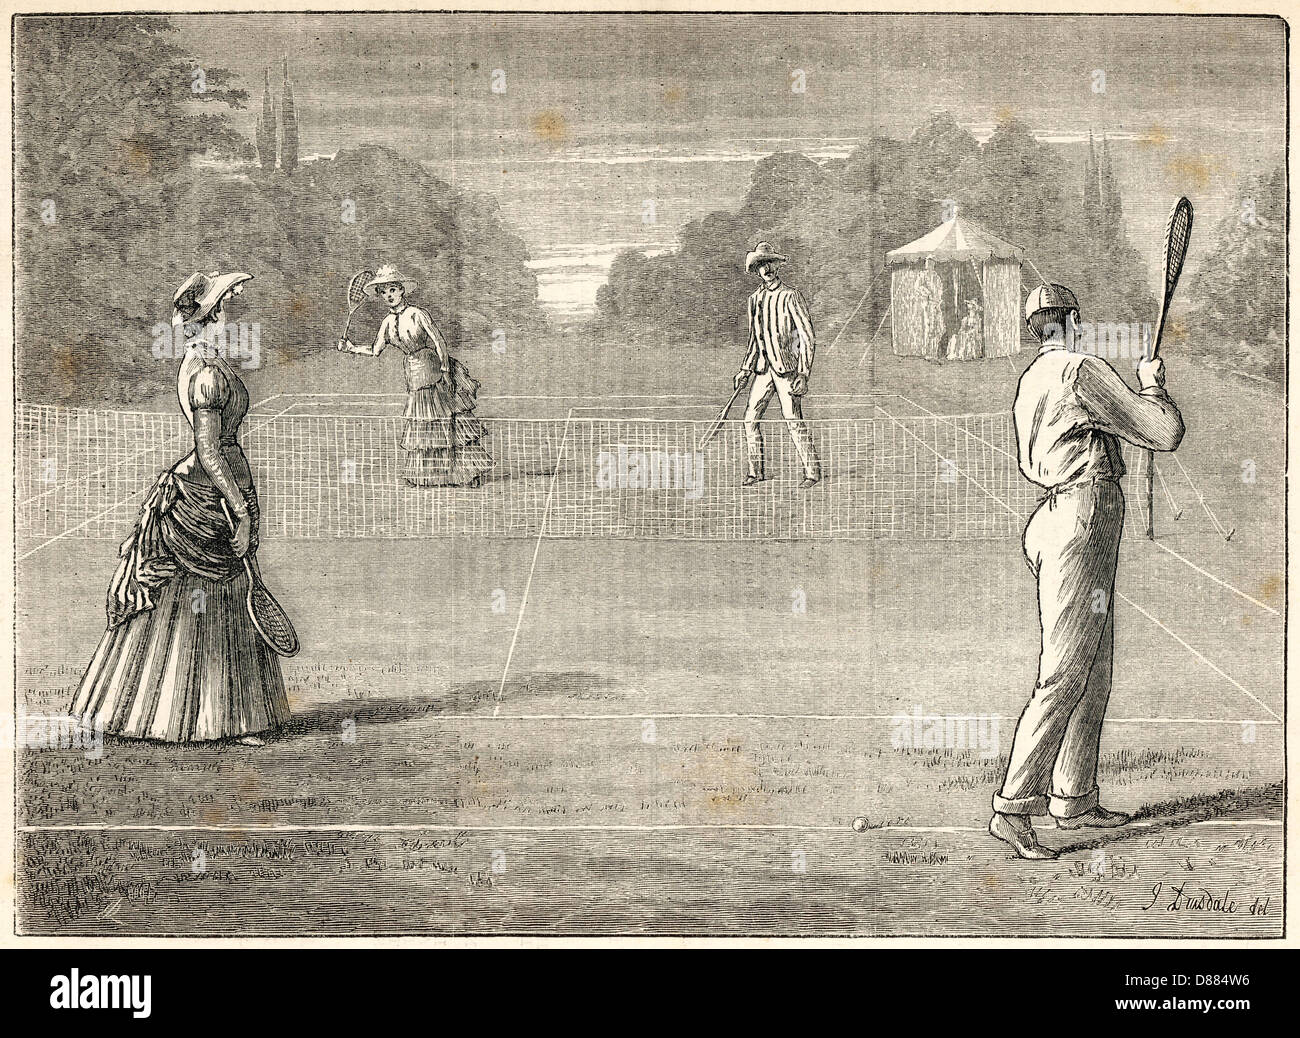 Mixed Doubles 1882 - Stock Image